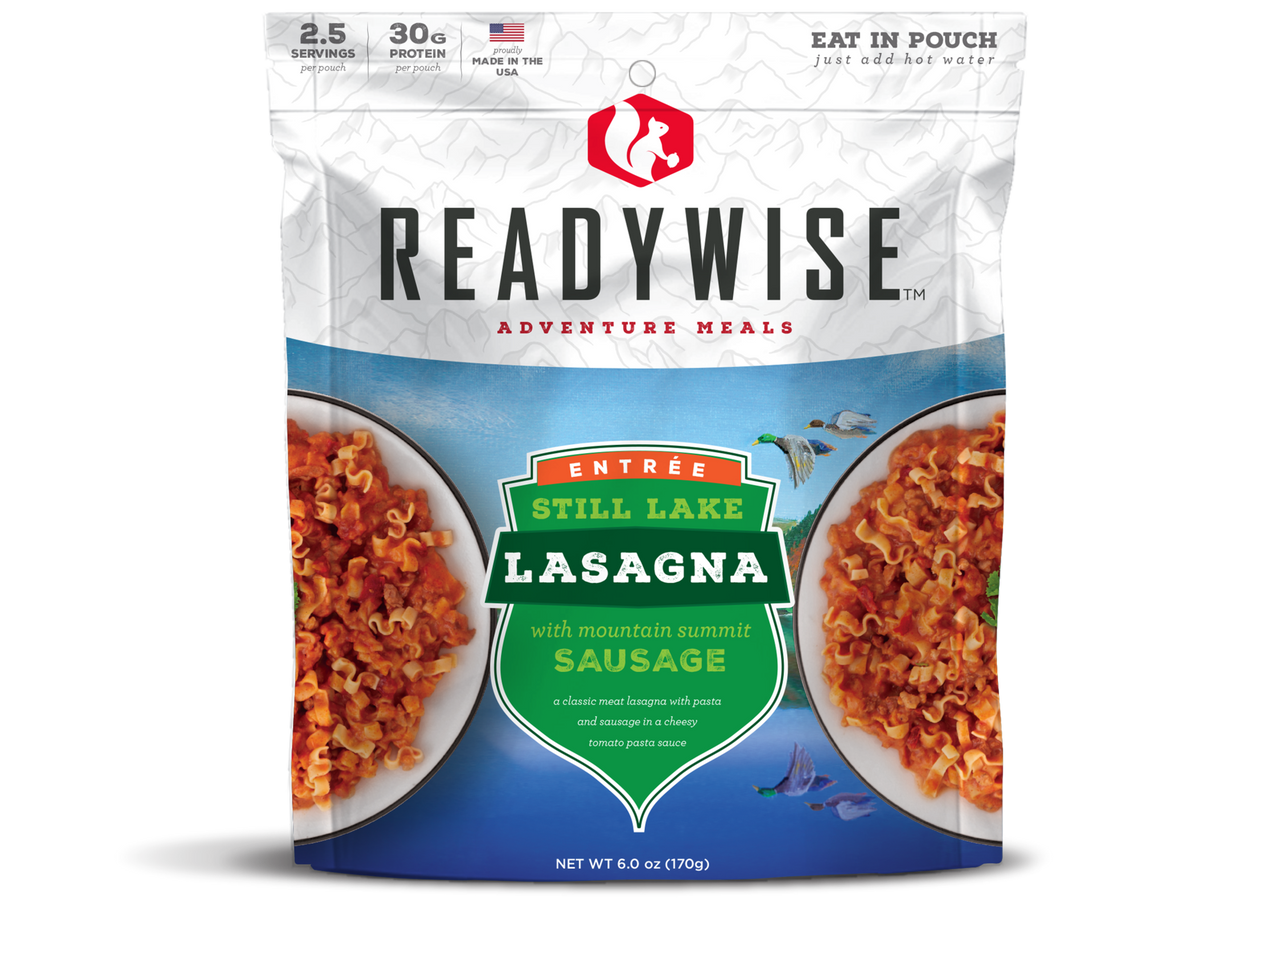 Wise Still Lake Lasagna with Sausage - 2 Serving Outdoor Pouch